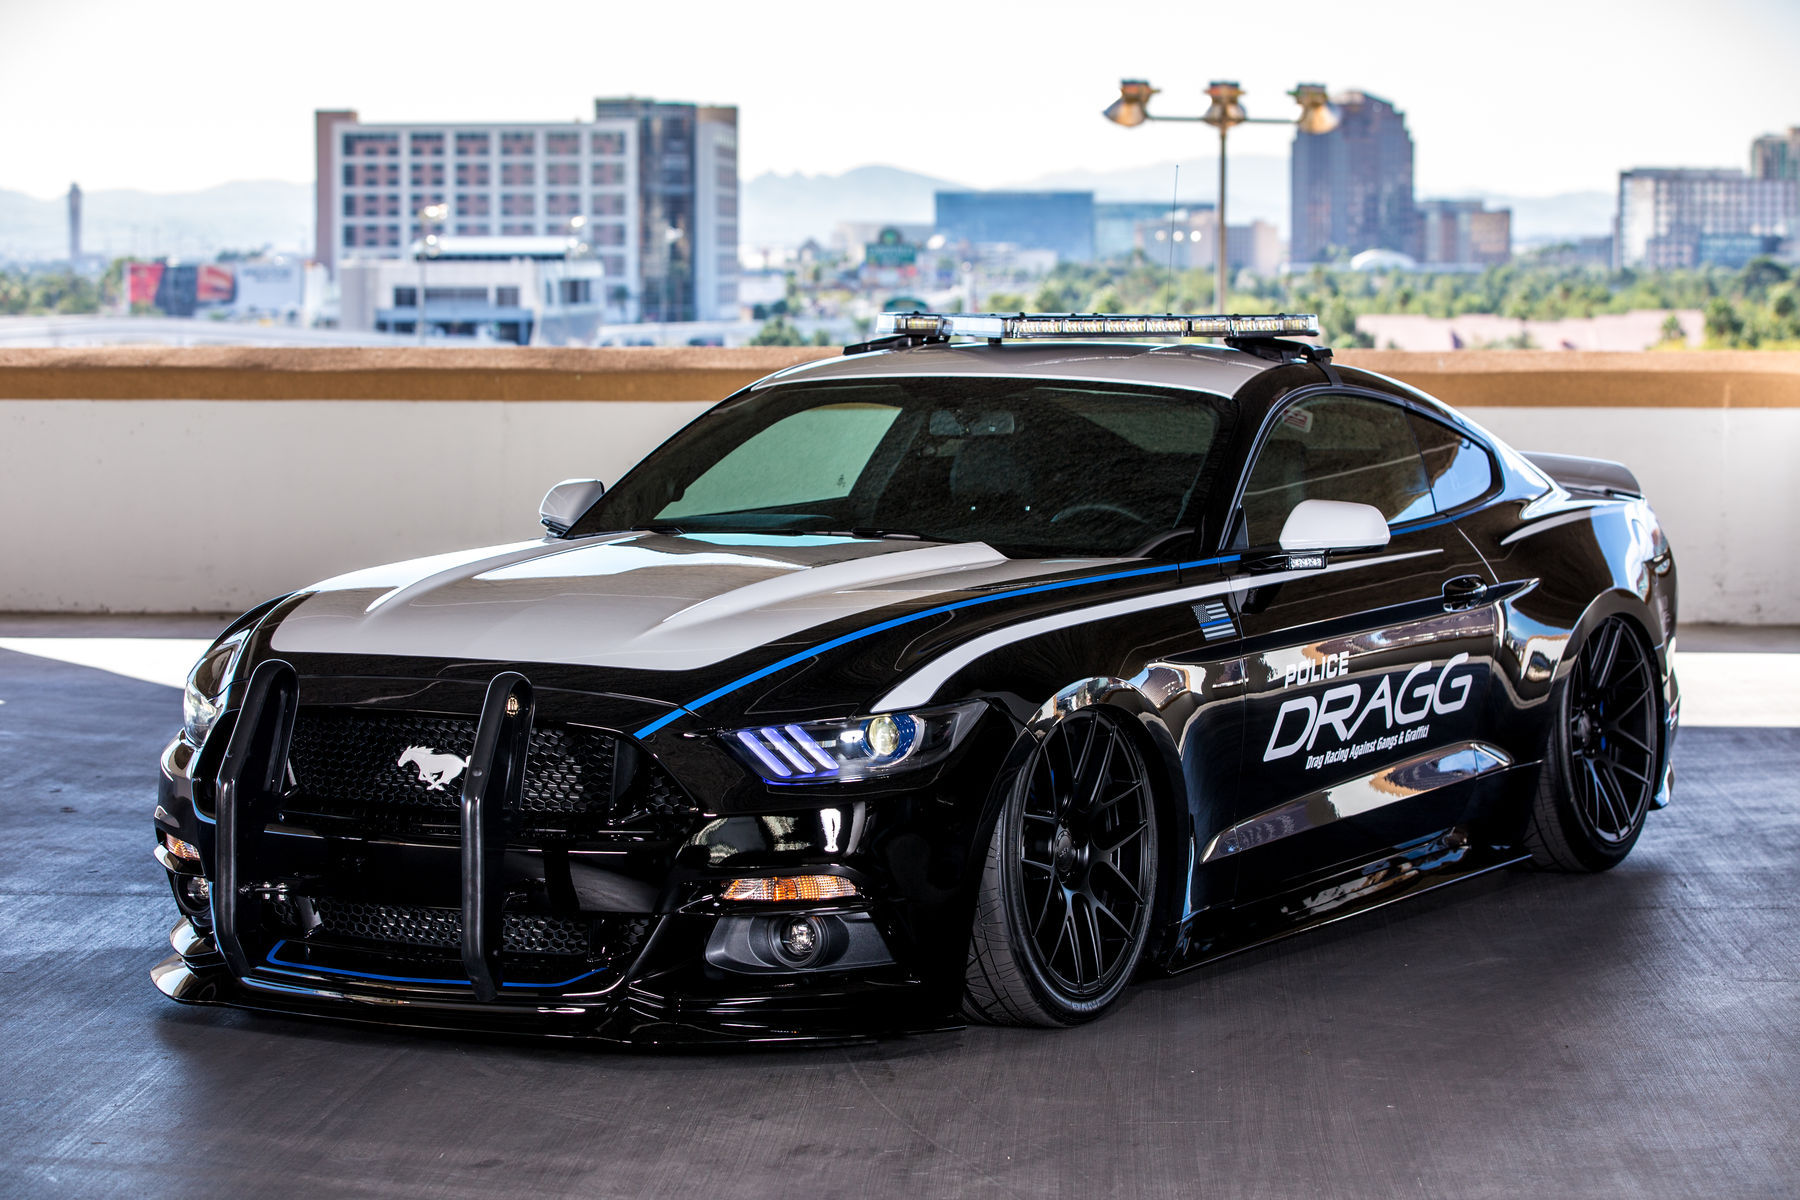 2015 Ford Mustang | 2015 Ford Mustang Fastback by Dragg